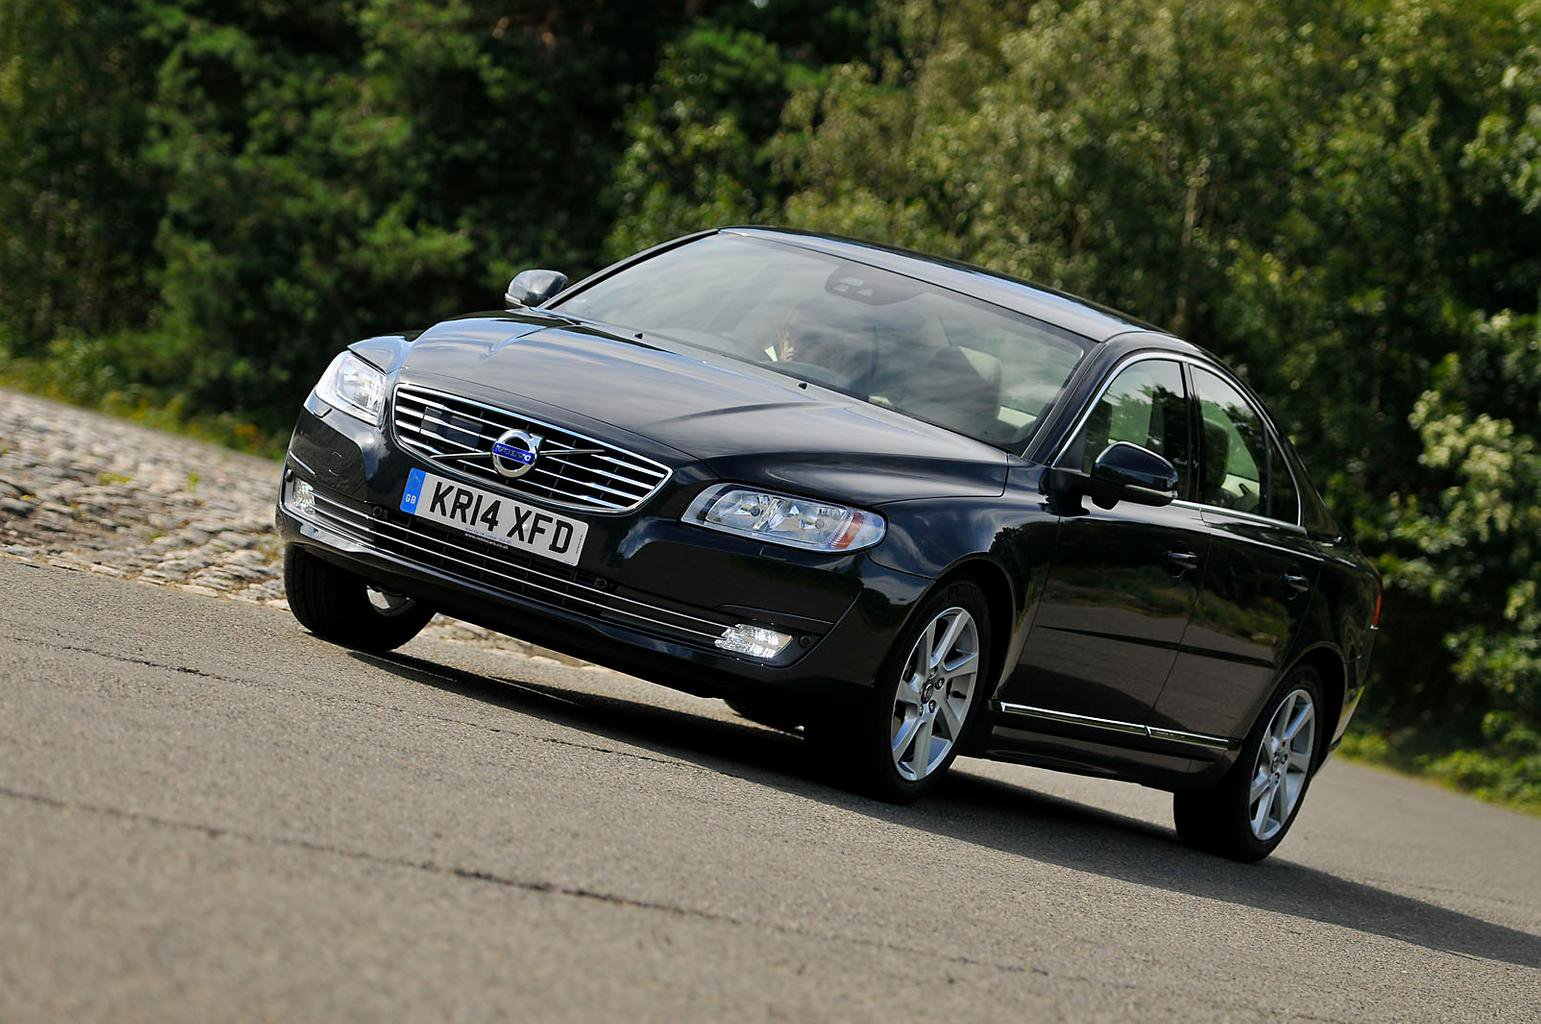 2014 Volvo S80 D4 review